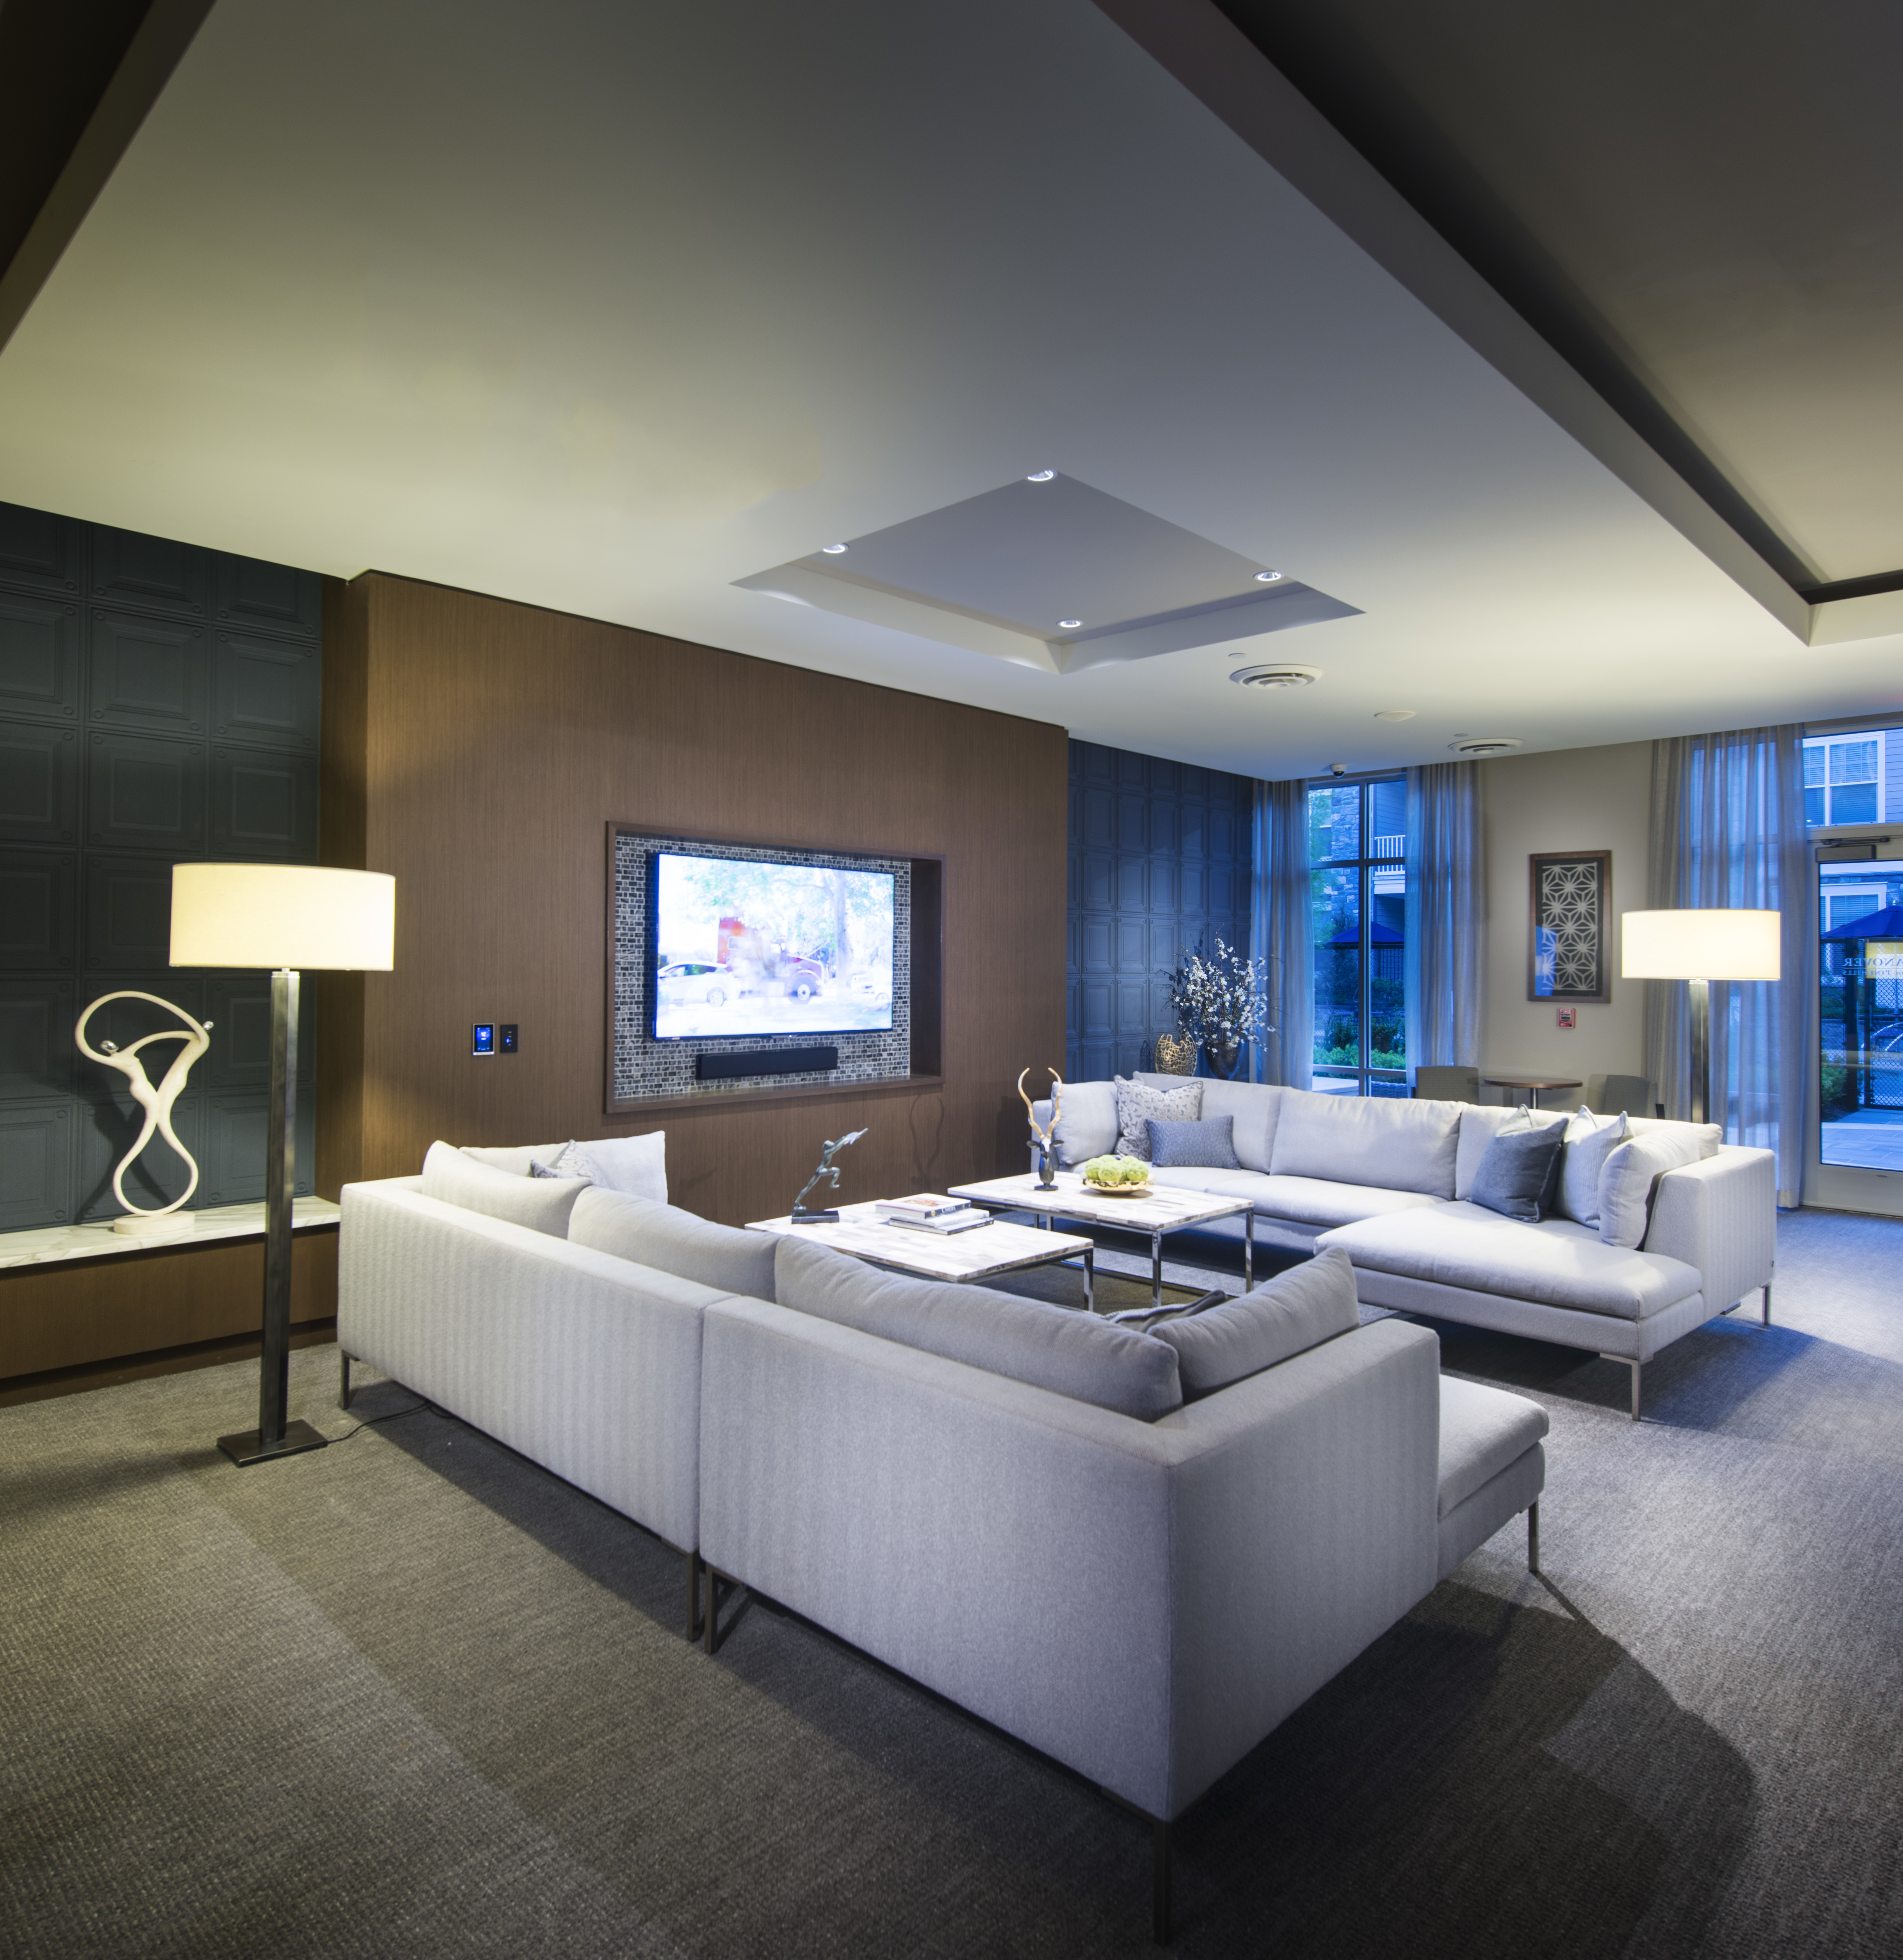 Relax in the Club Room - Marq at The Pinehills Luxury Apartments